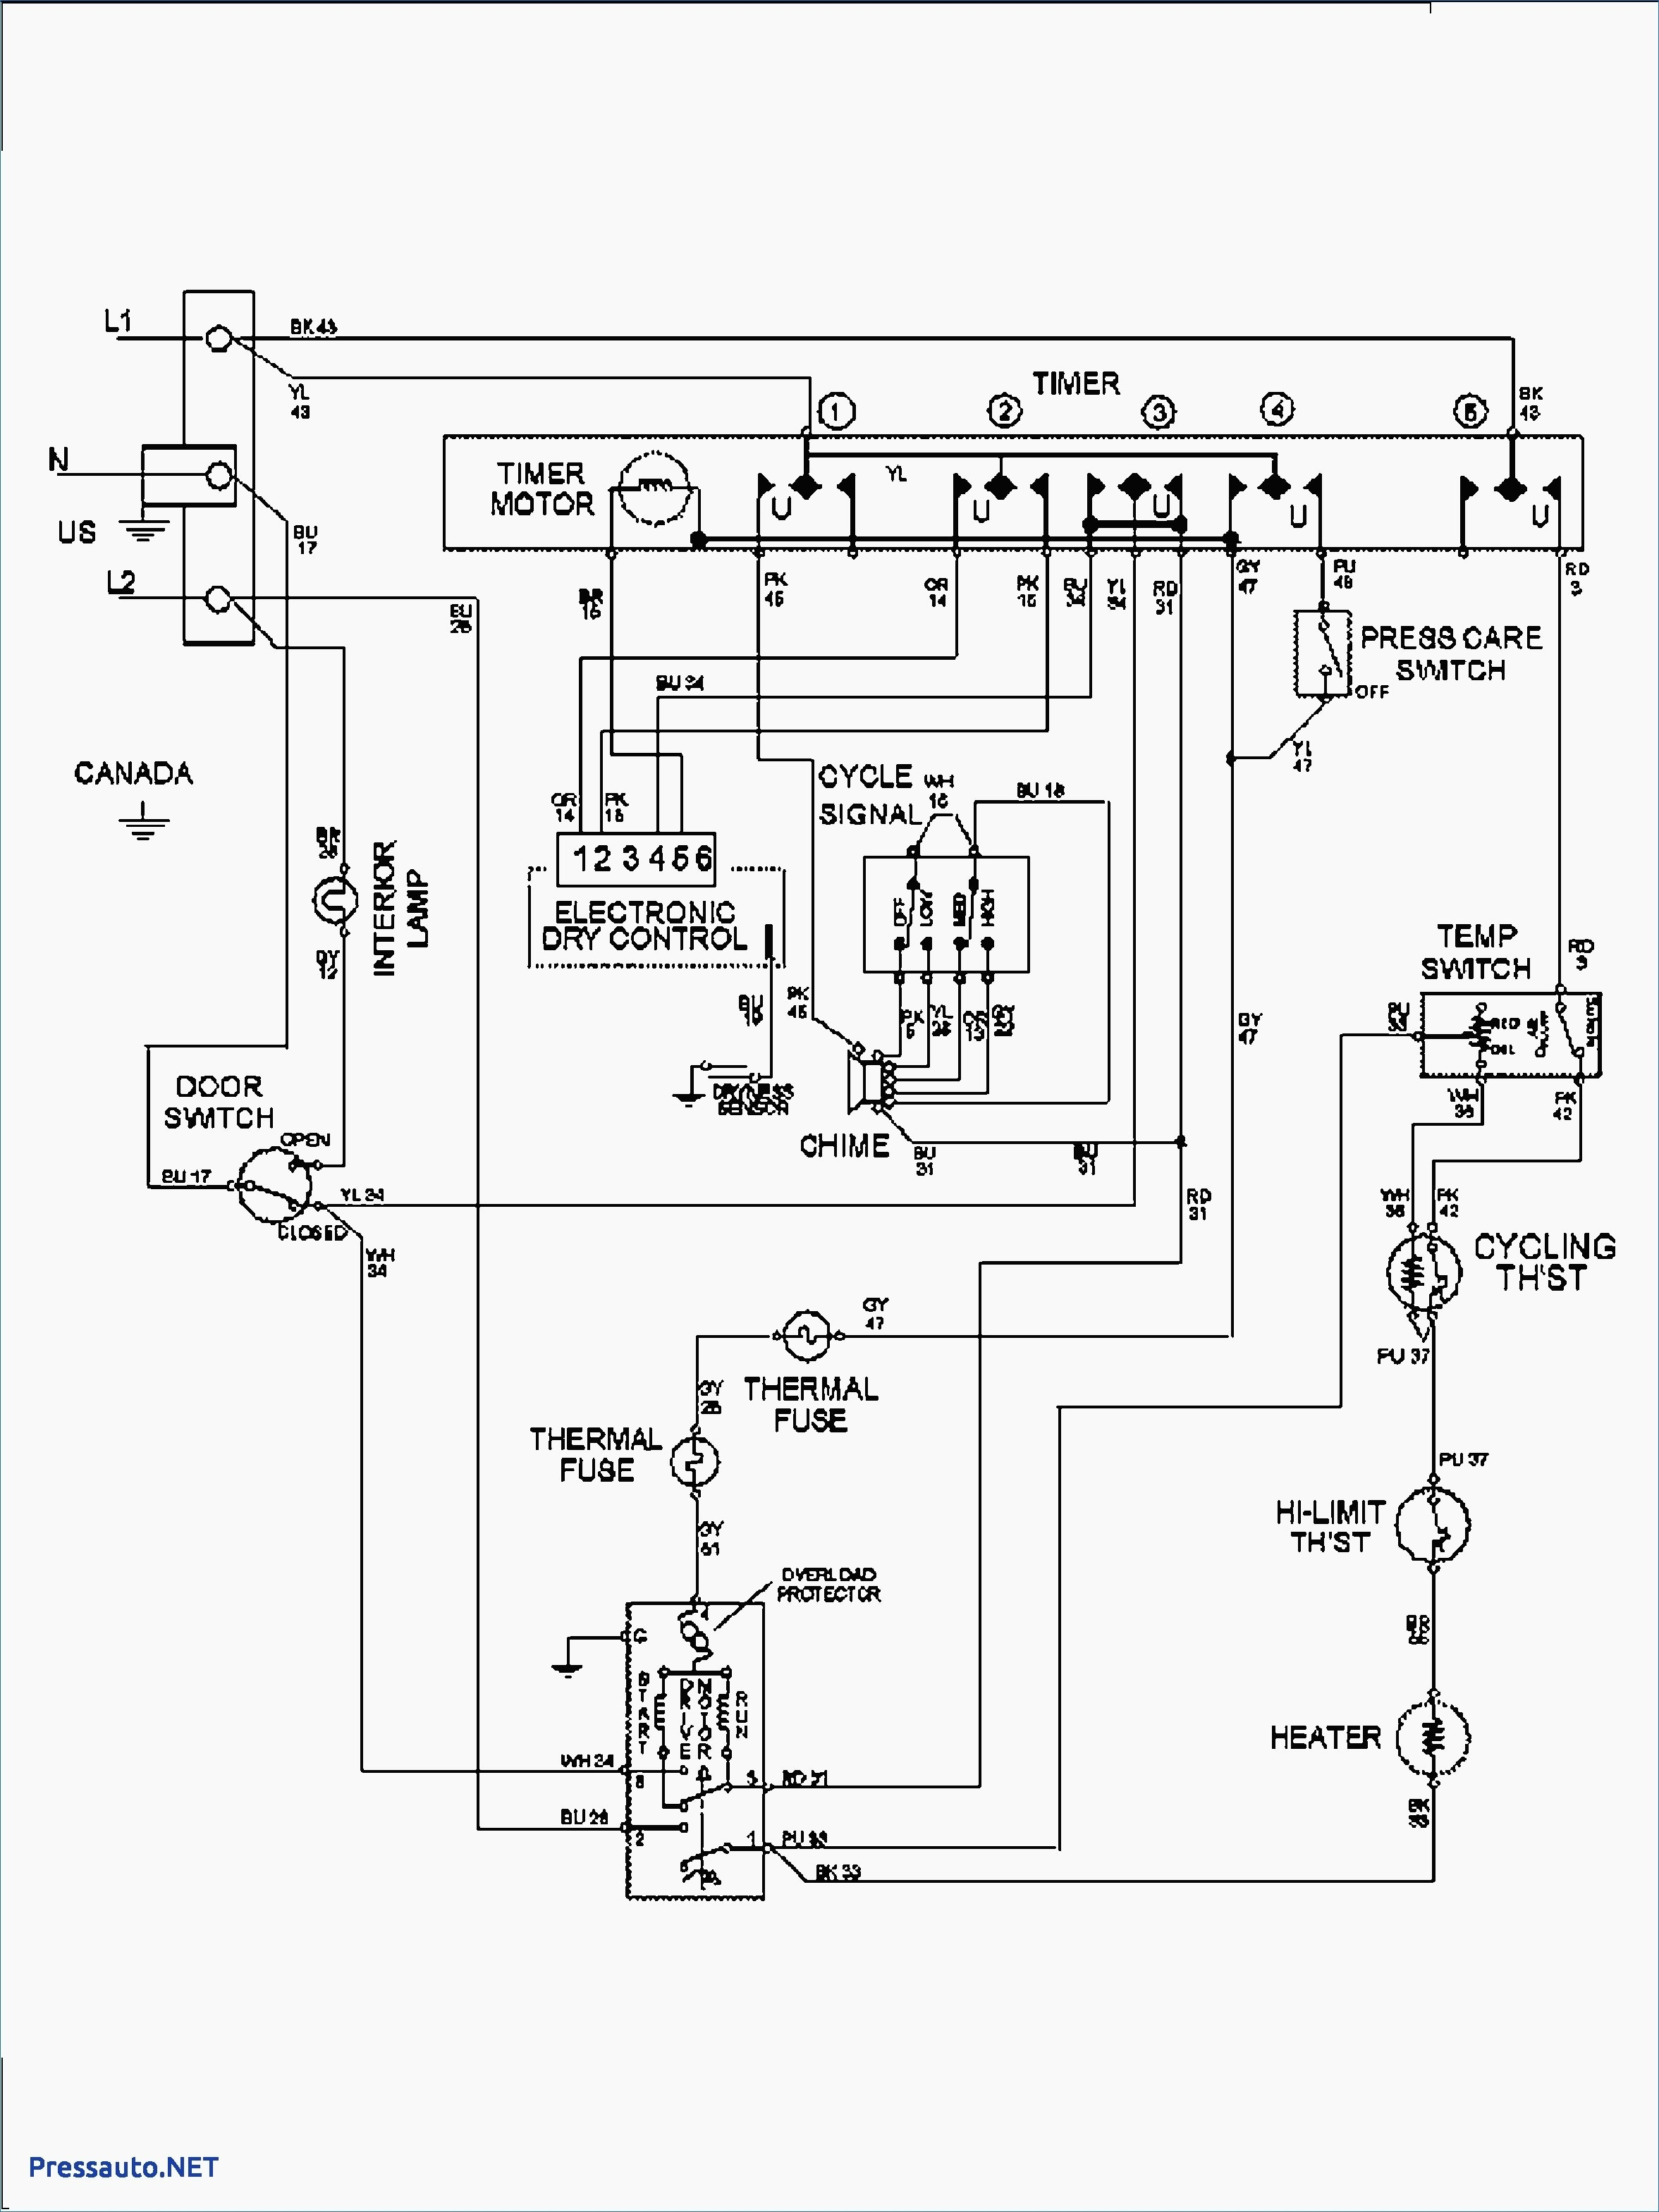 Whirlpool    Dryer       Wiring    Schematic   Free    Wiring       Diagram